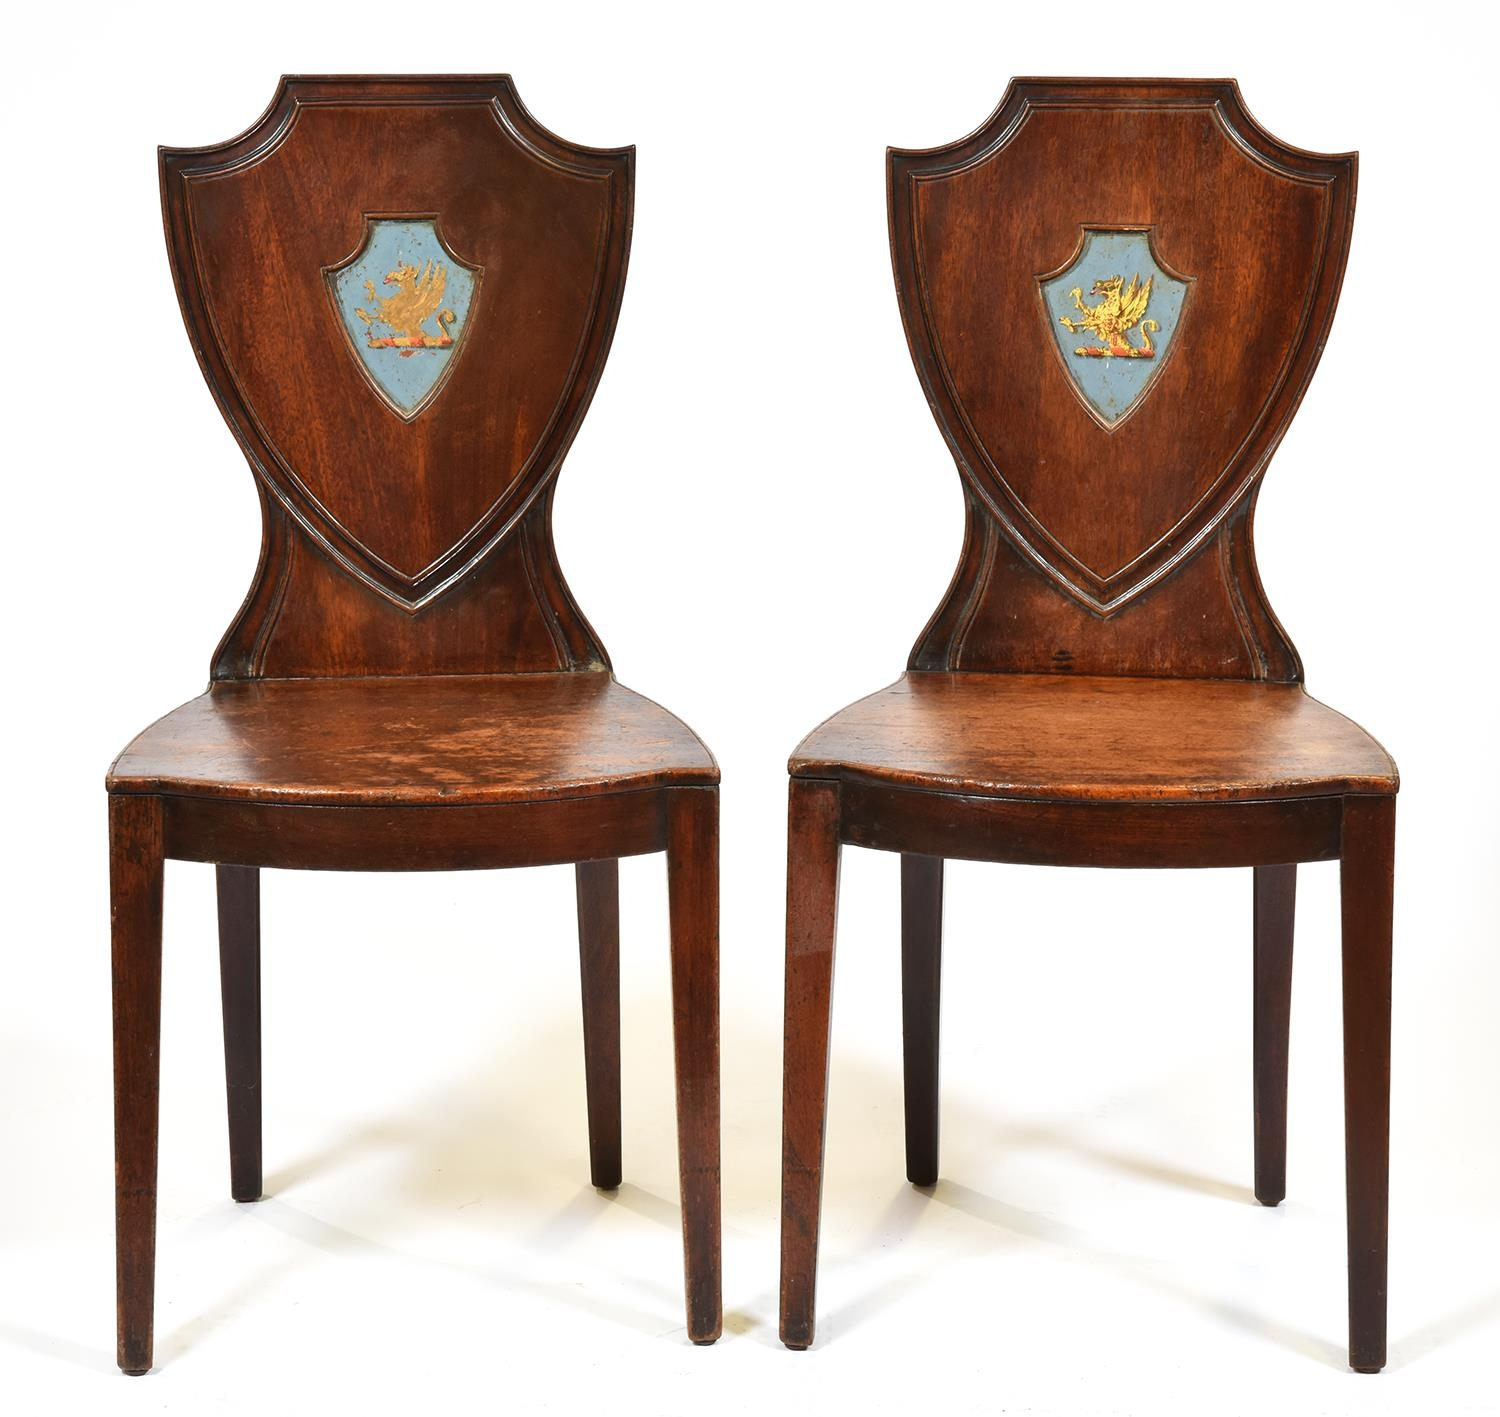 A pair of George III mahogany hall chairs, late 18th c, the shield back painted with the crest of